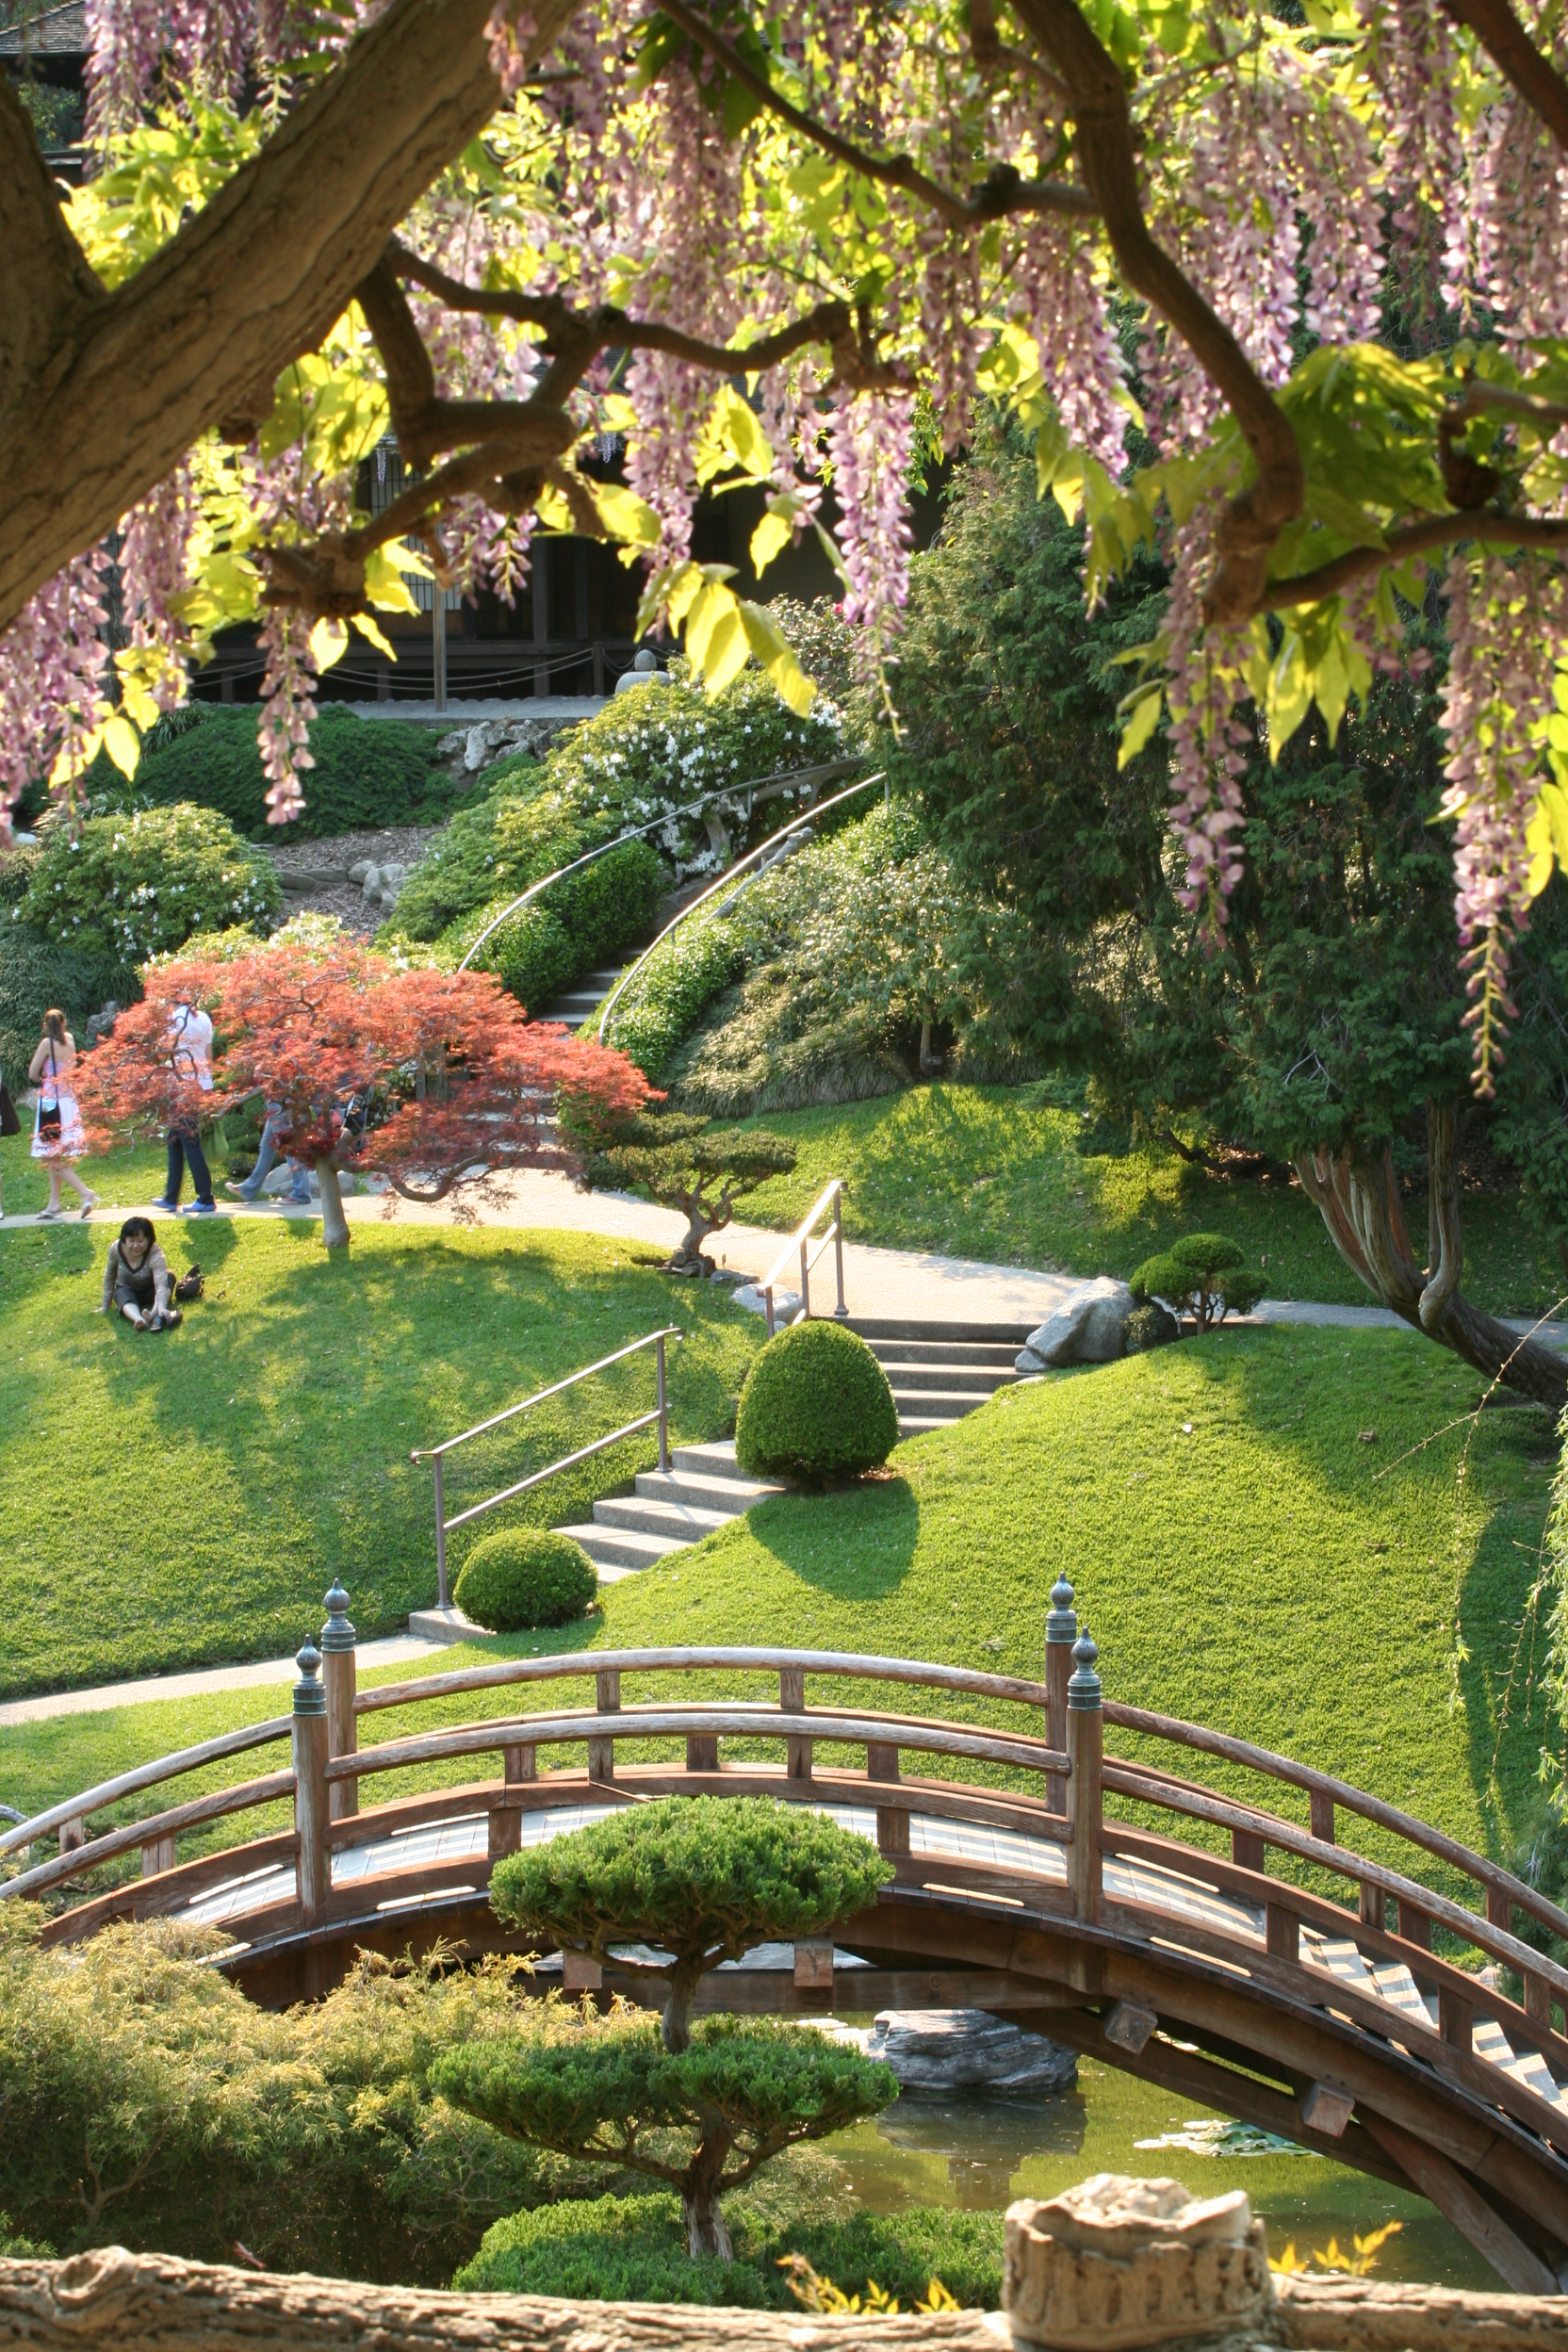 File:Huntington Japanese Garden.jpg